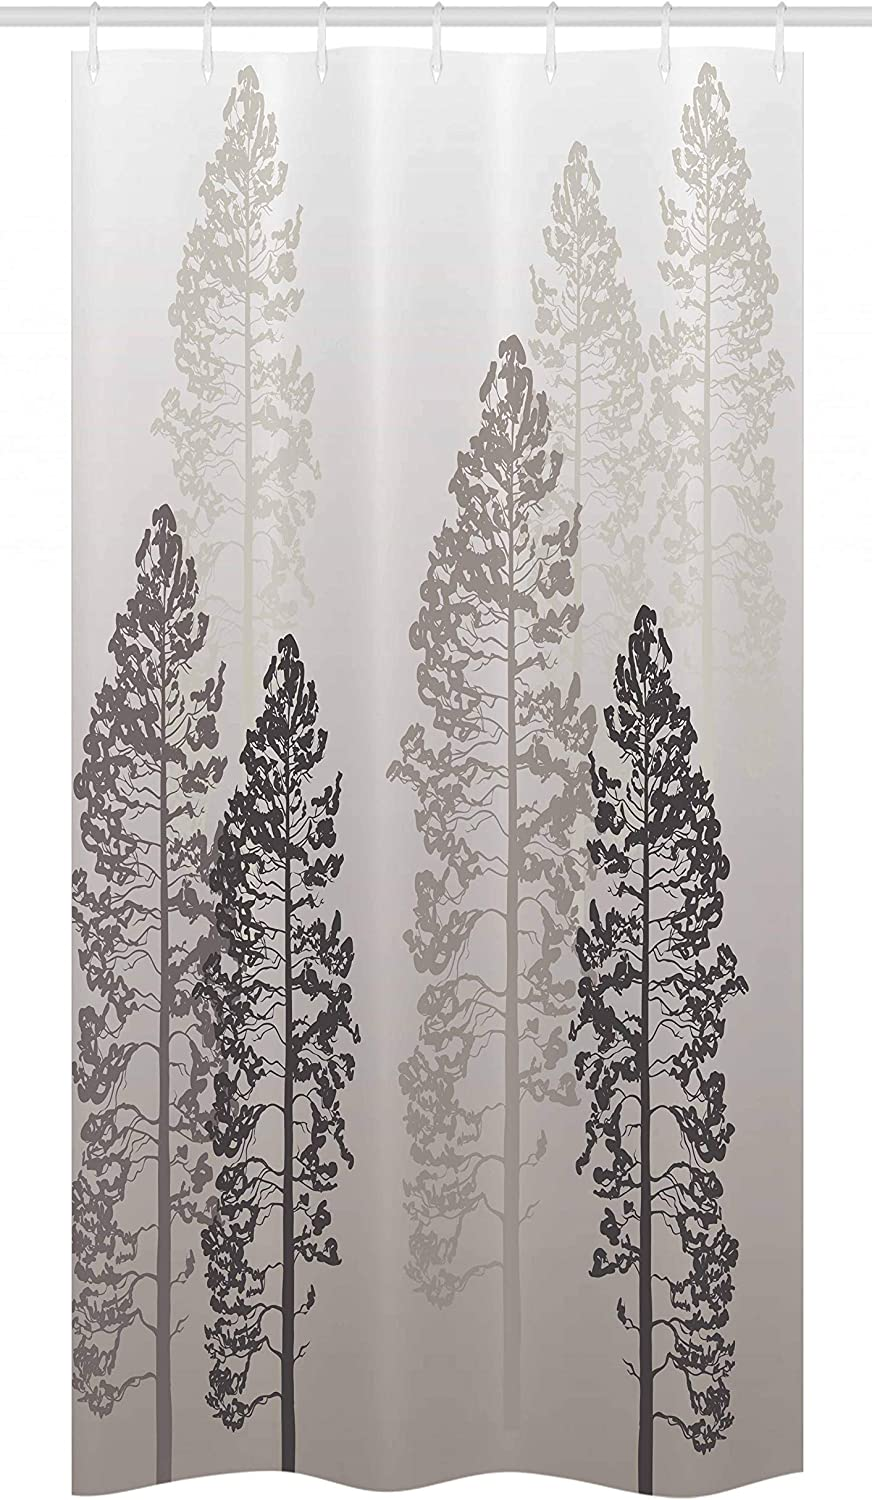 "Ambesonne Country Stall Shower Curtain, Pine Trees in The Forest on Foggy Seem Ombre Backdrop Wildlife Adventure Artwork, Fabric Bathroom Decor Set with Hooks, 36"" X 72"", Warm Taupe"